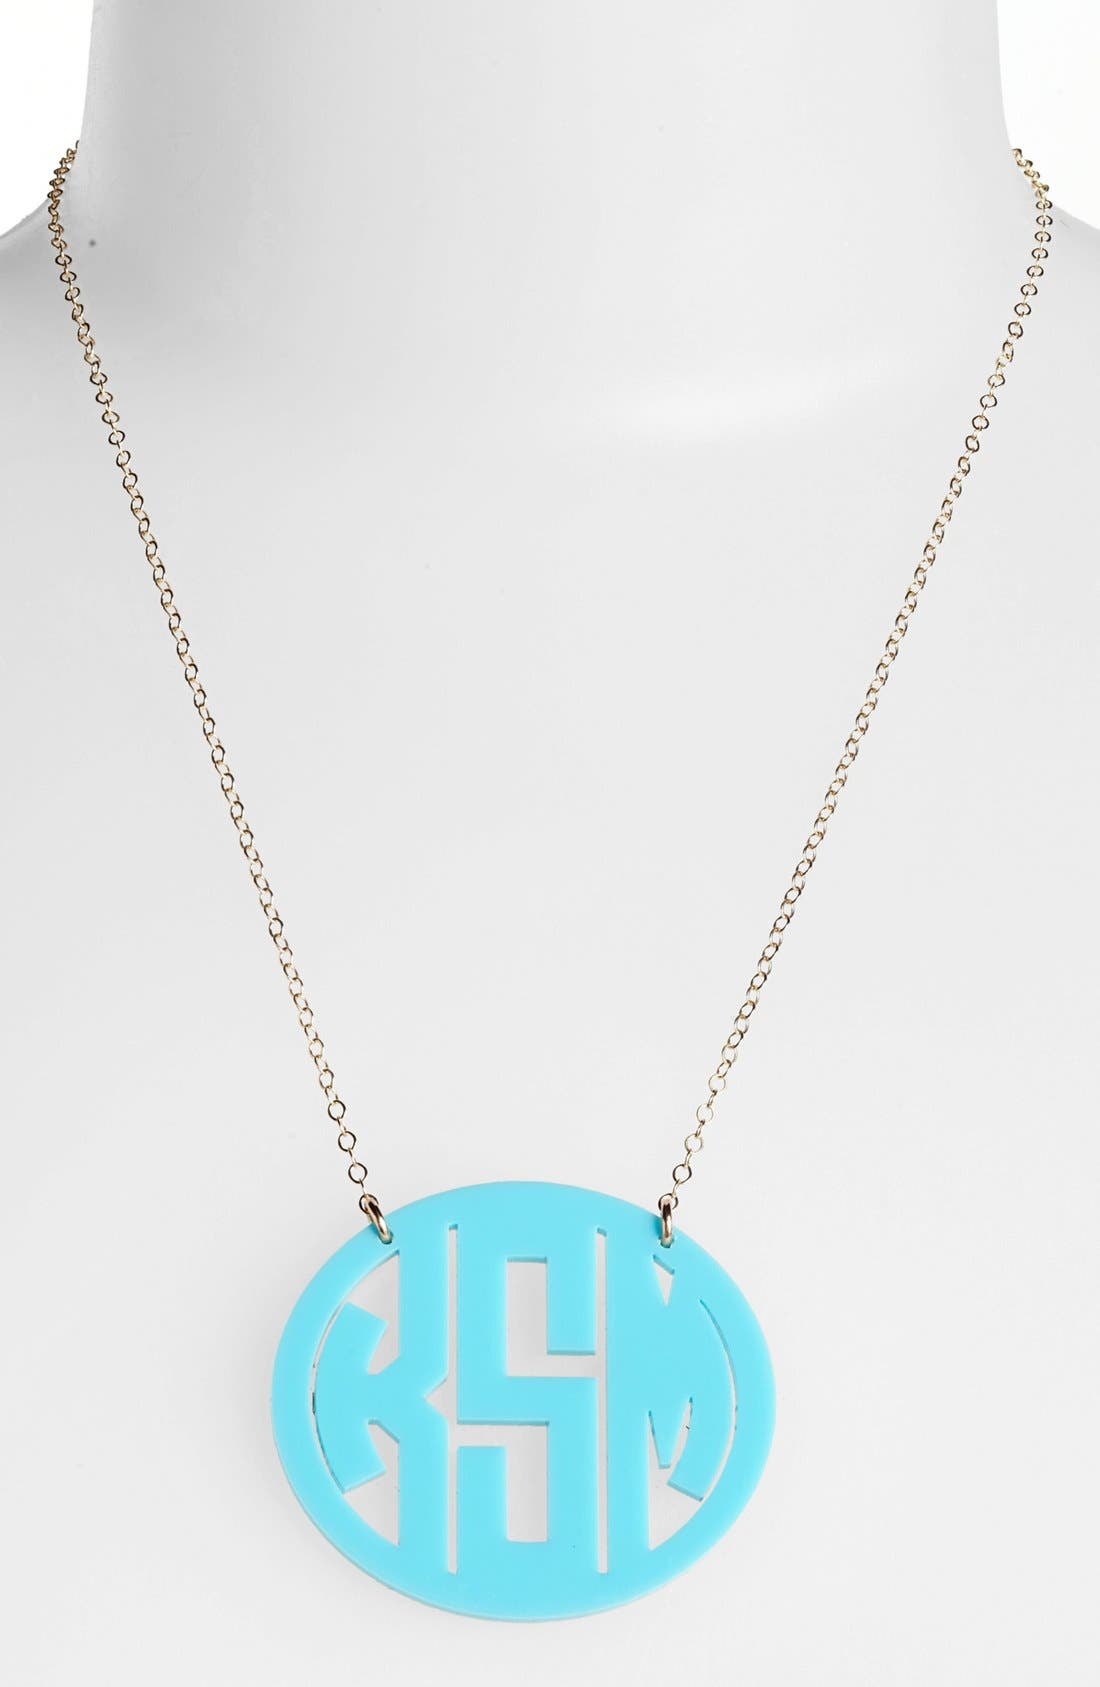 Main Image - Moon and Lola Large Oval Personalized Monogram Pendant Necklace (Nordstrom Exclusive)